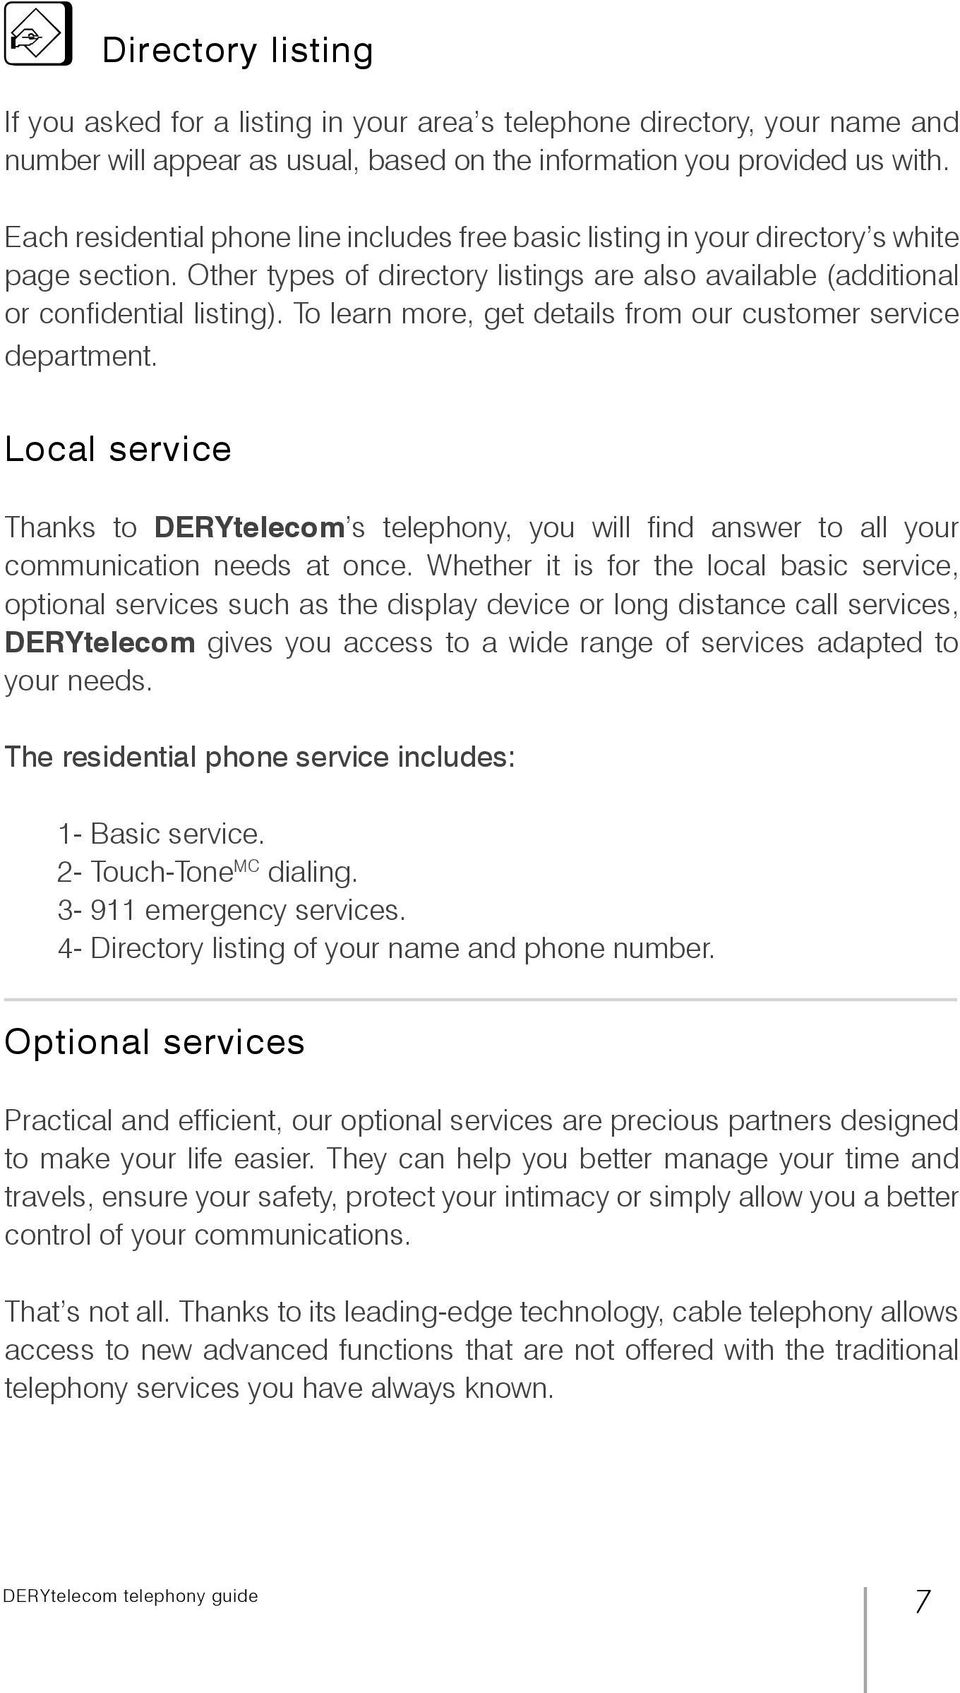 To learn more, get details from our customer service department. Local service Thanks to DERYtelecom s telephony, you will find answer to all your communication needs at once.